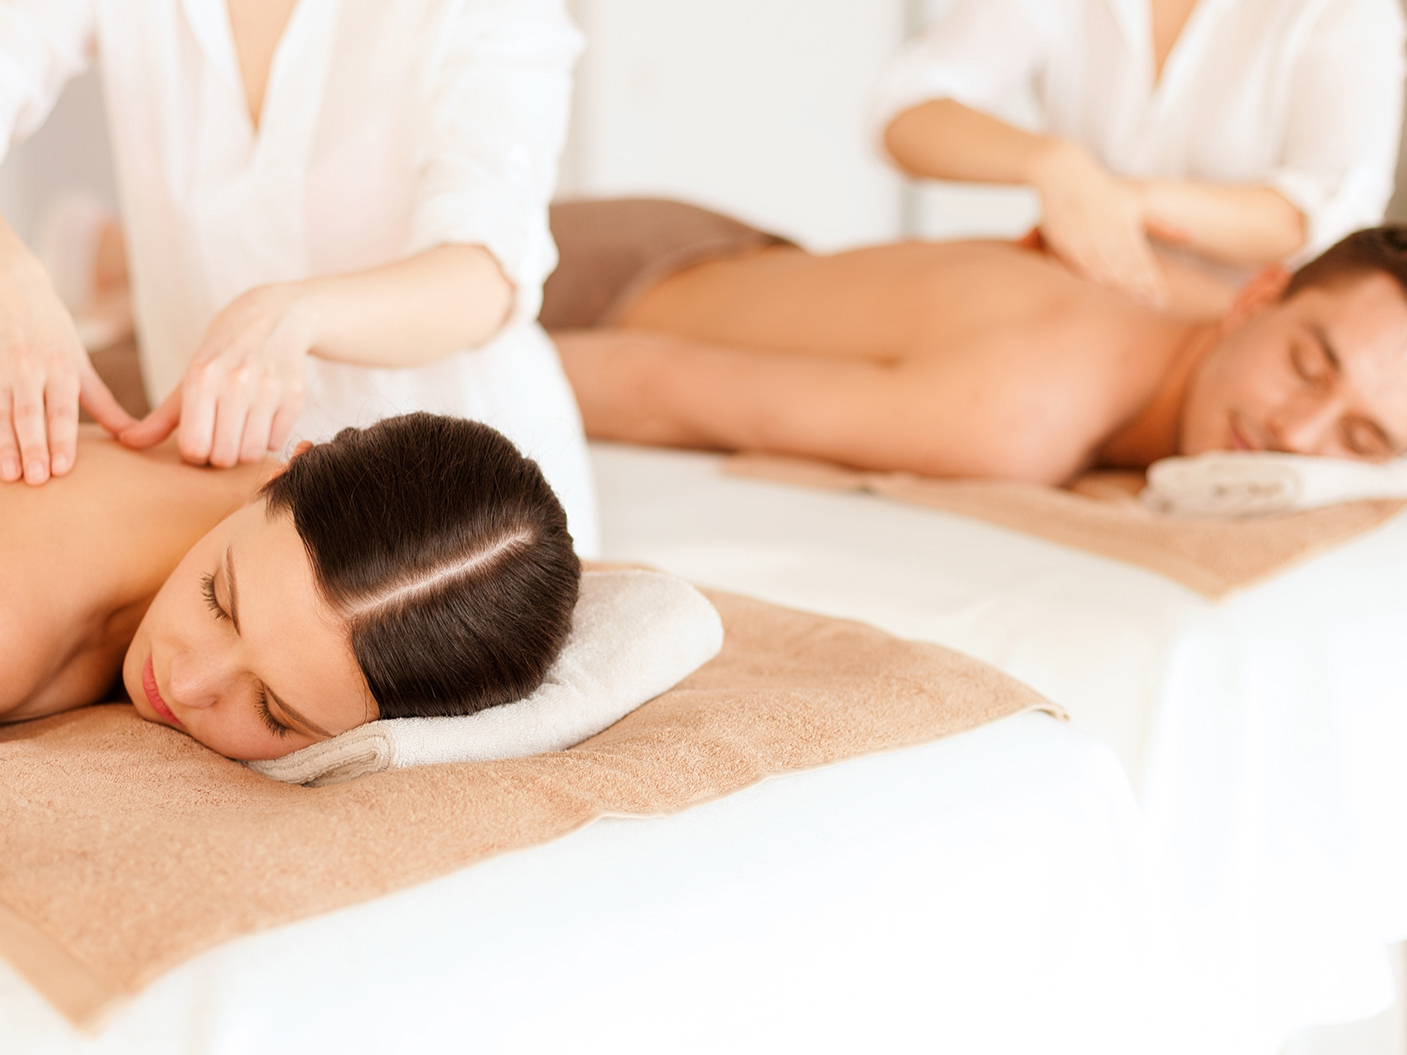 two people receiving a massage